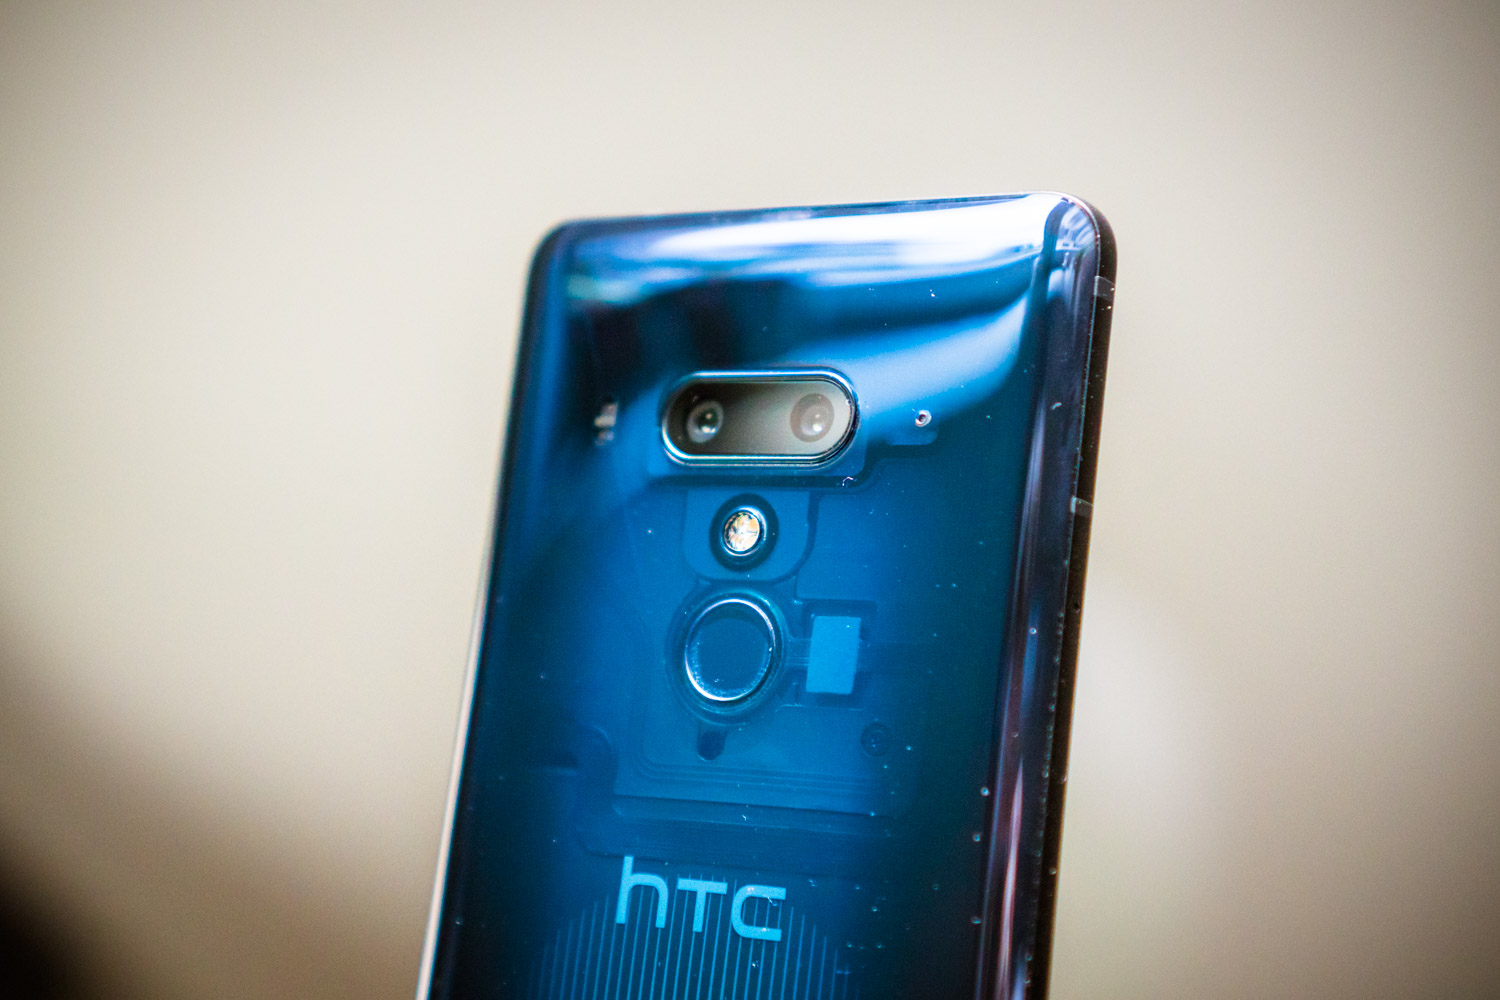 Soon the premiere of the HTC smartphone